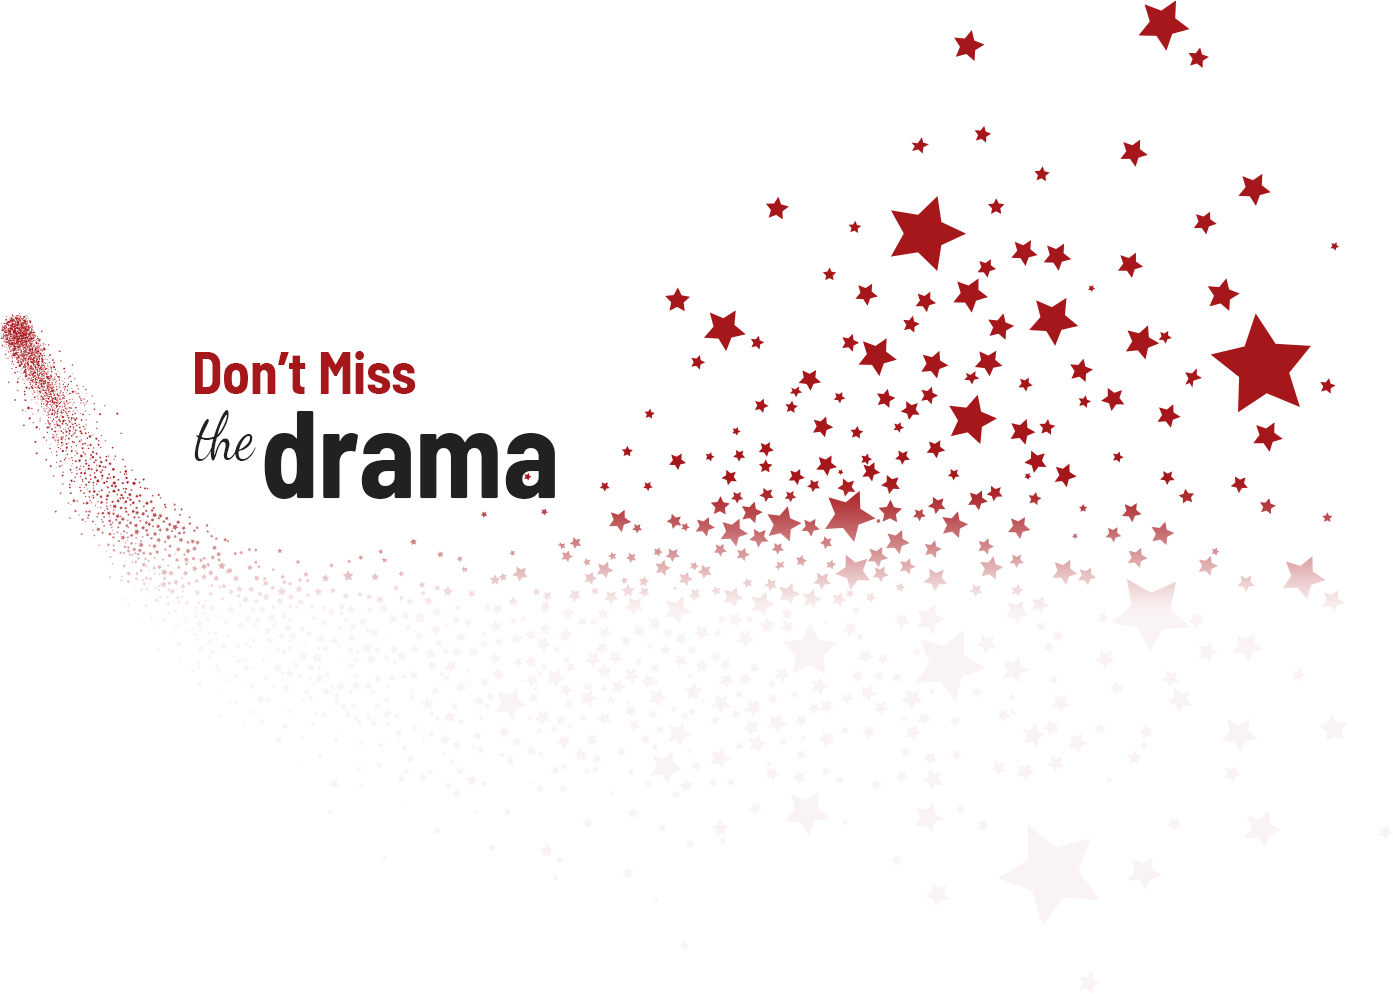 Don't Miss the Drama with star background